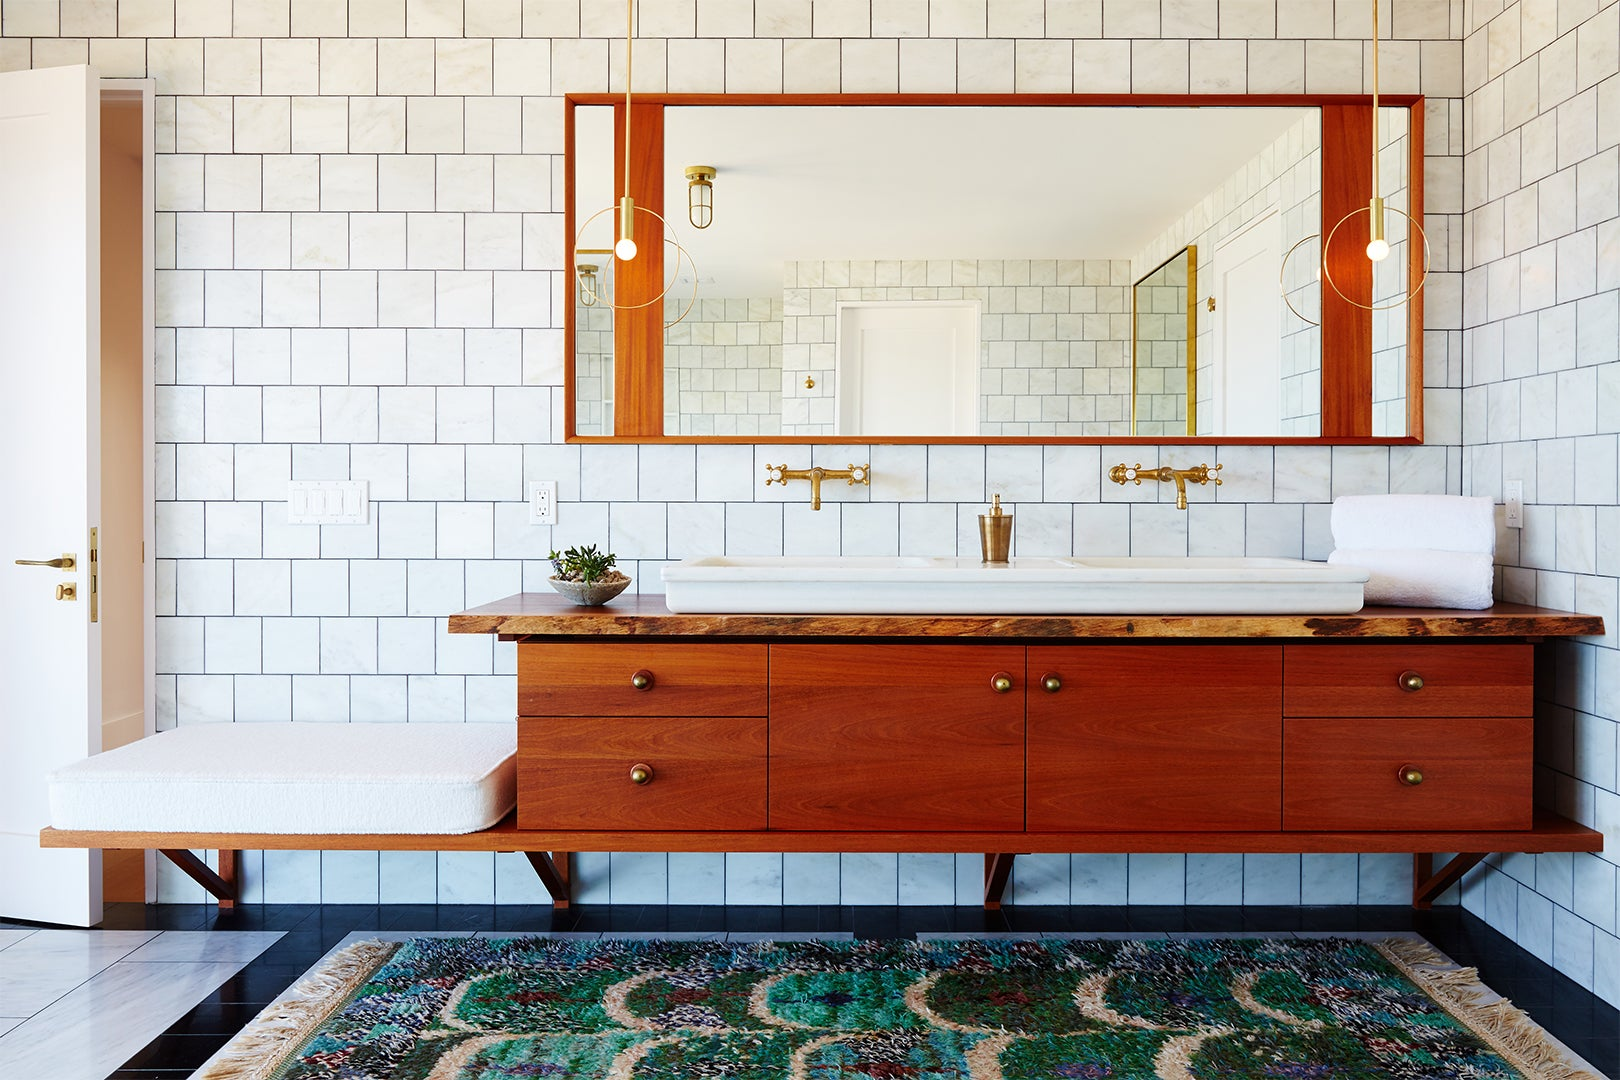 Studio-McKinley-bathroom-vanity-domino